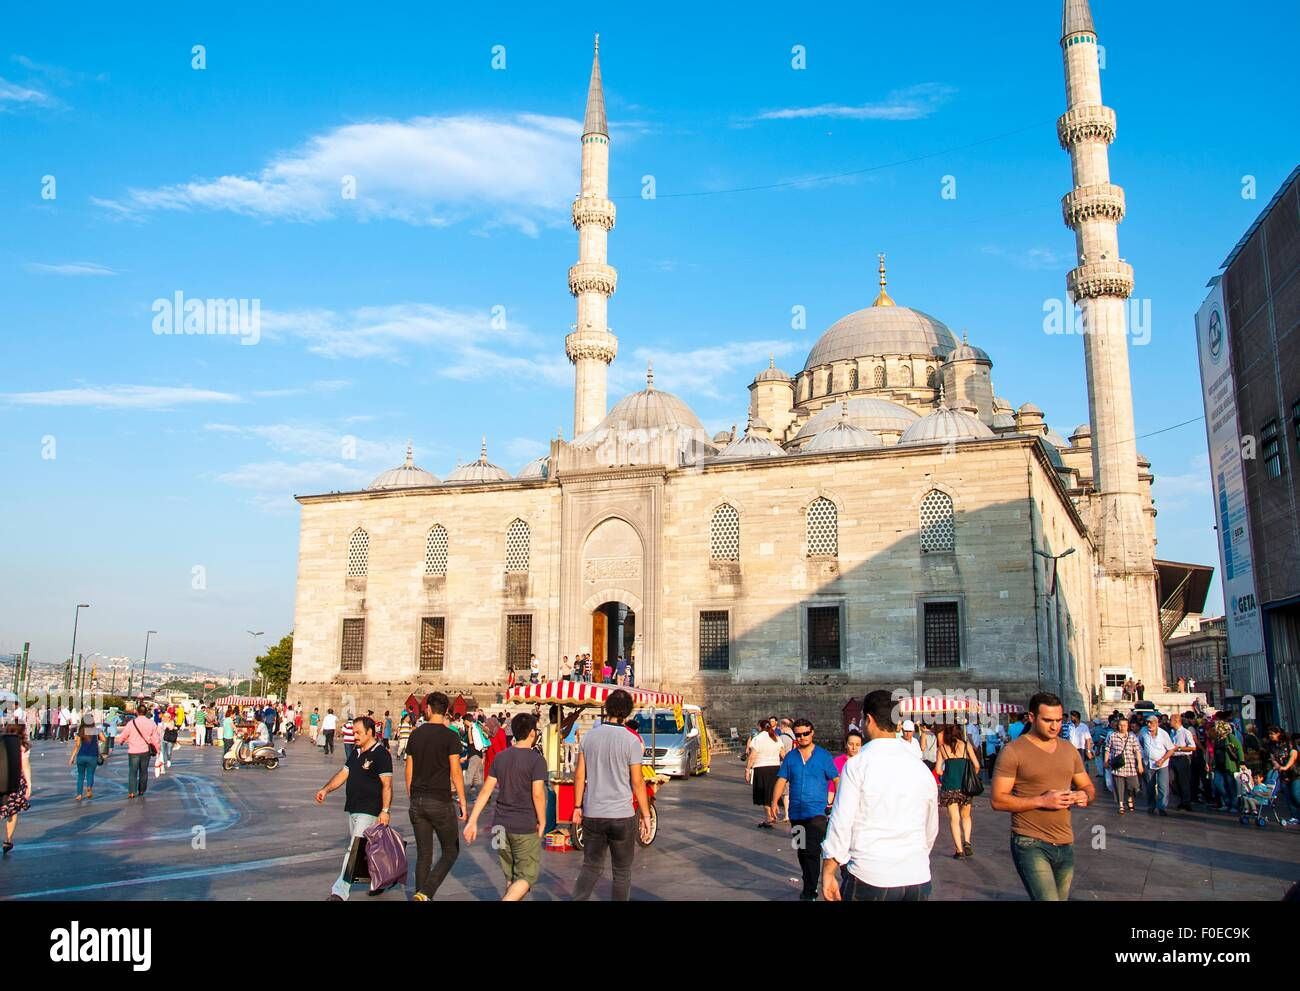 Istanbul, Turkey - August 11th, 2015: People leaving the Yeni Cami mosque after the afternoon prayer in Istanbul - Stock Image